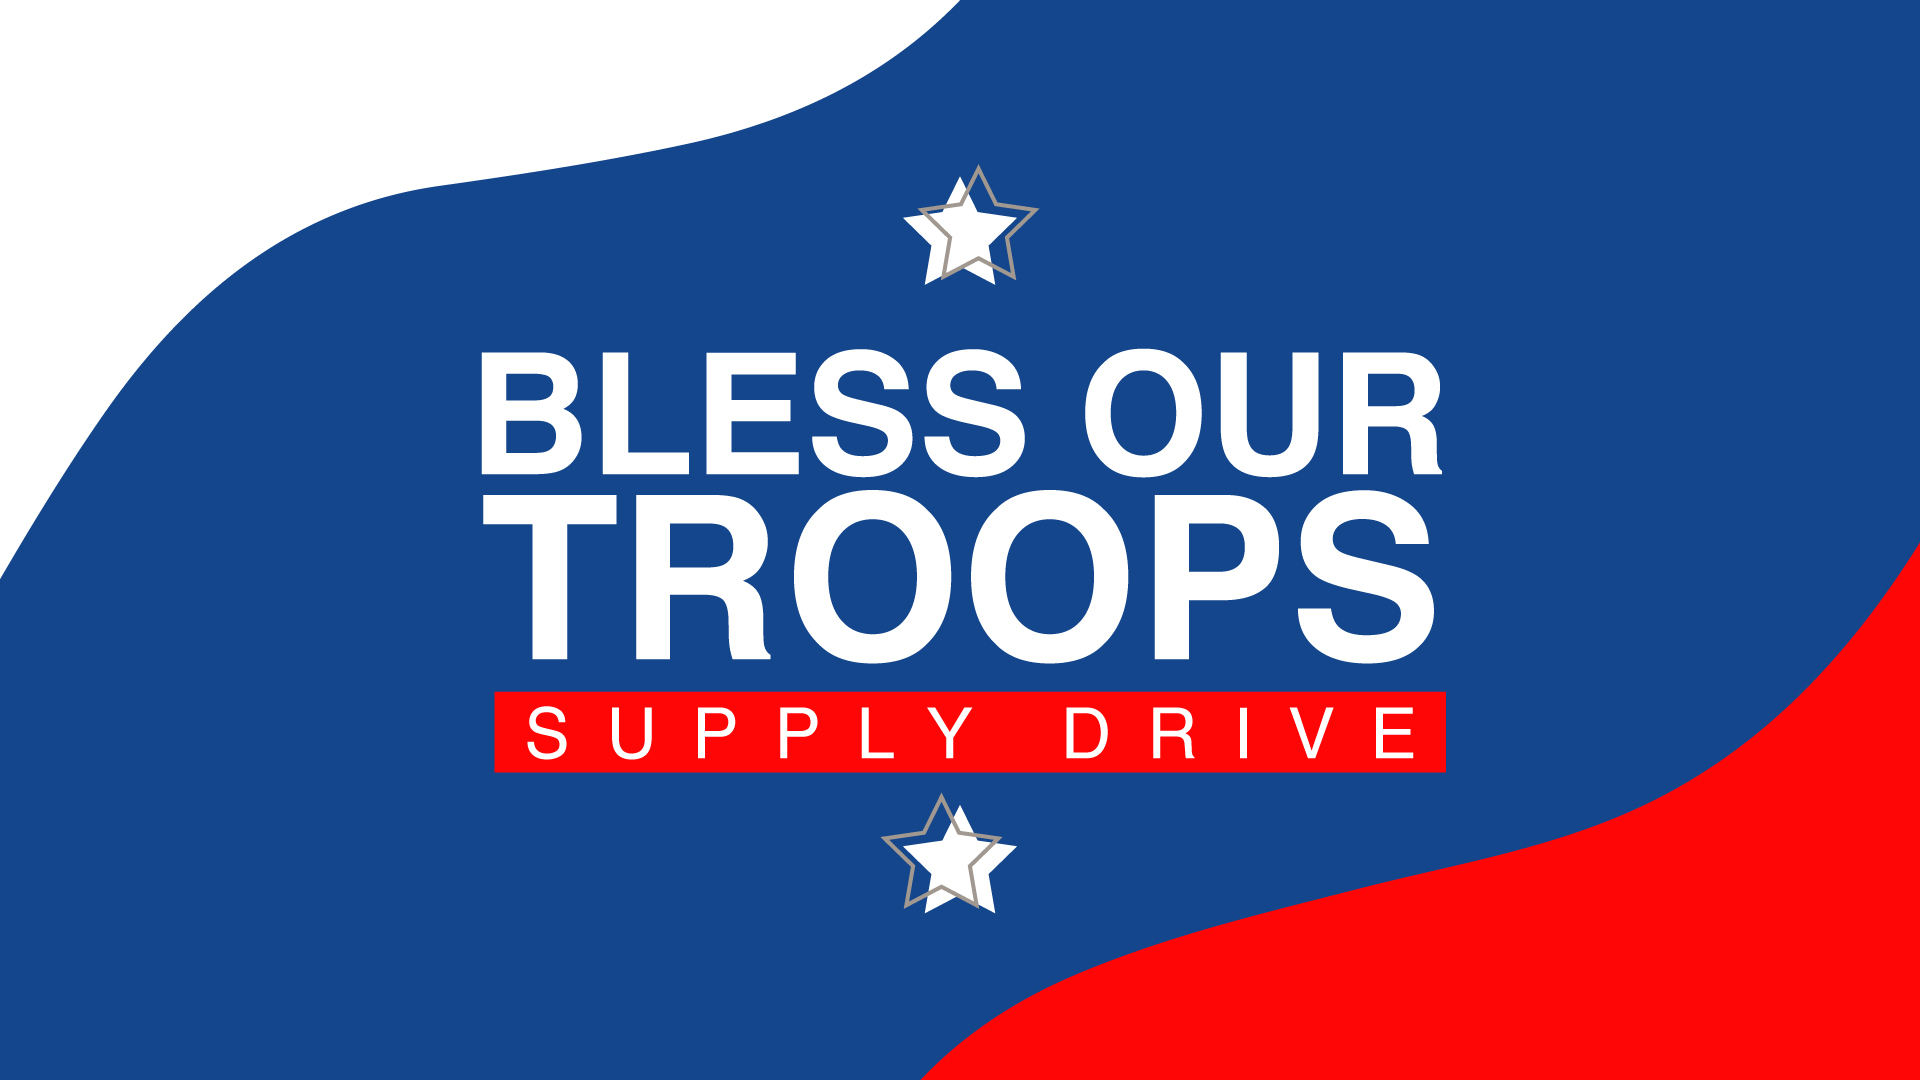 Bless Our Troops Supply Drive